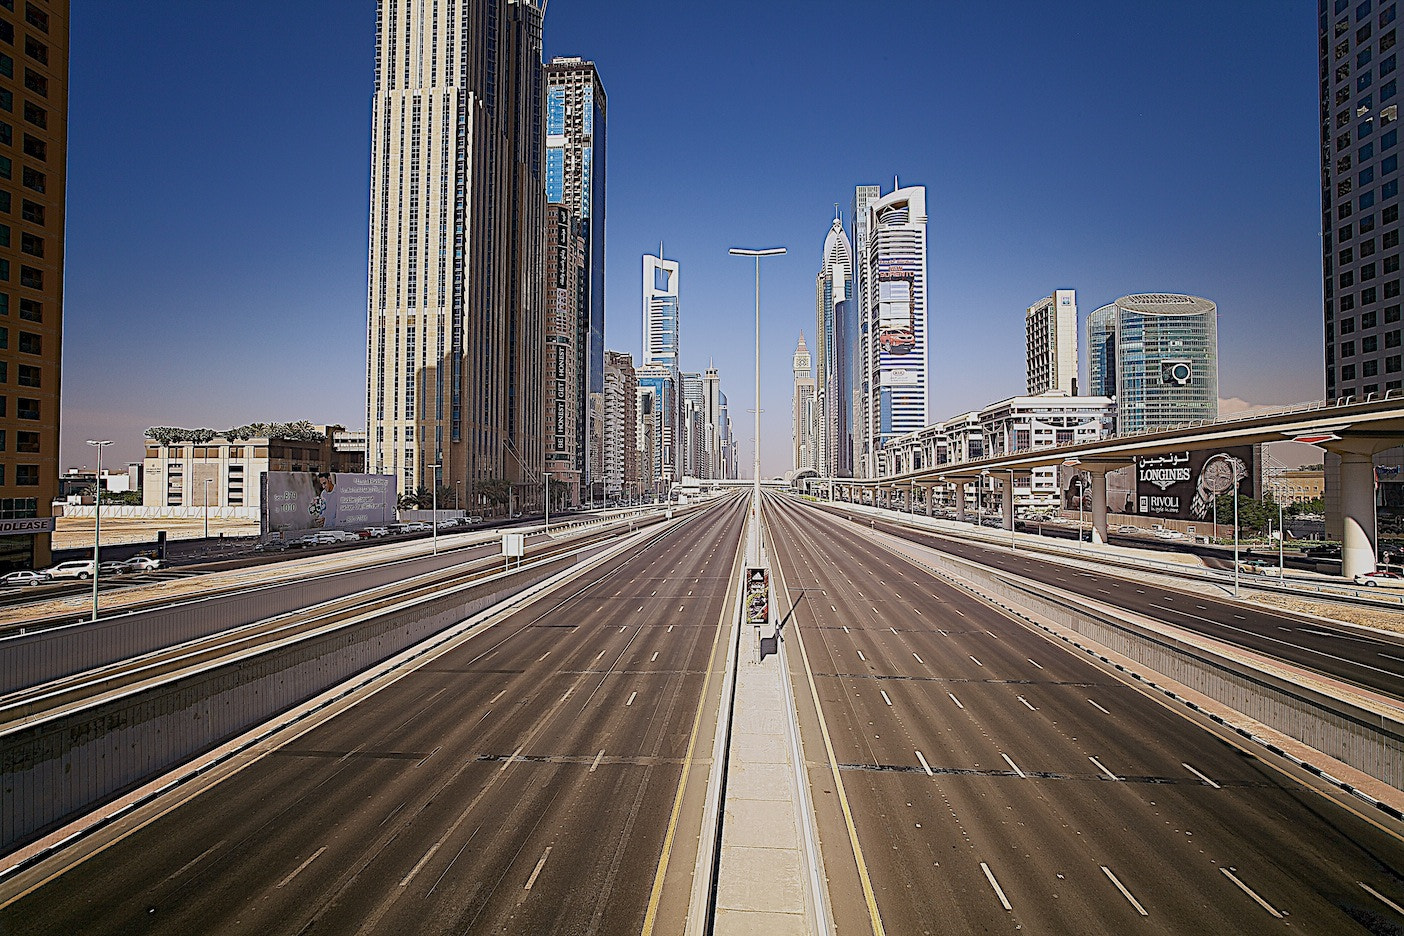 Photograph Sheikh Zayed Road-Dubai by Majid Behzad on 500px